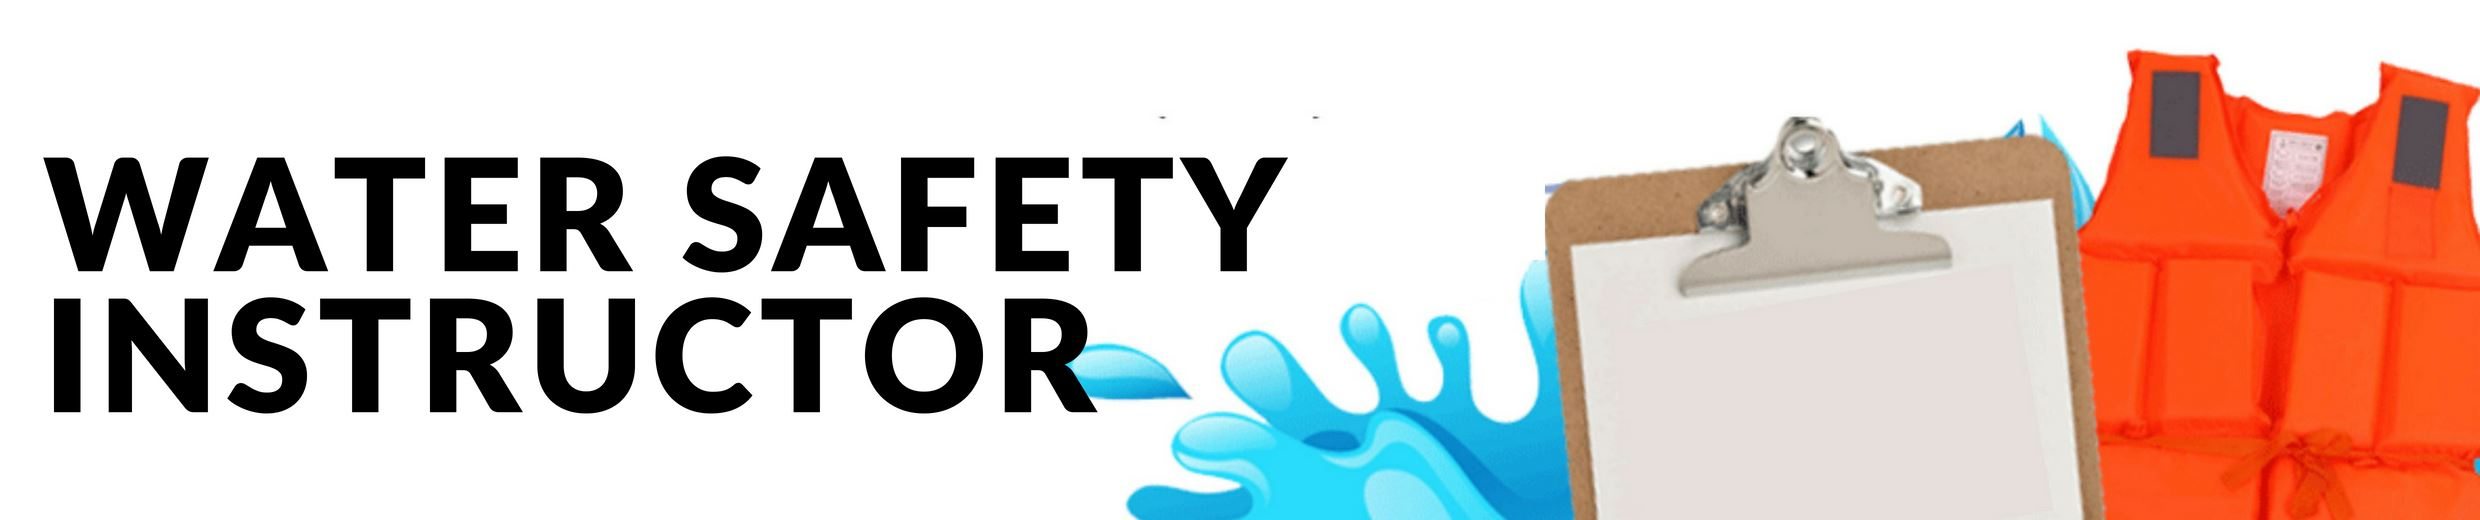 """Water Safety Instructor"" banner"